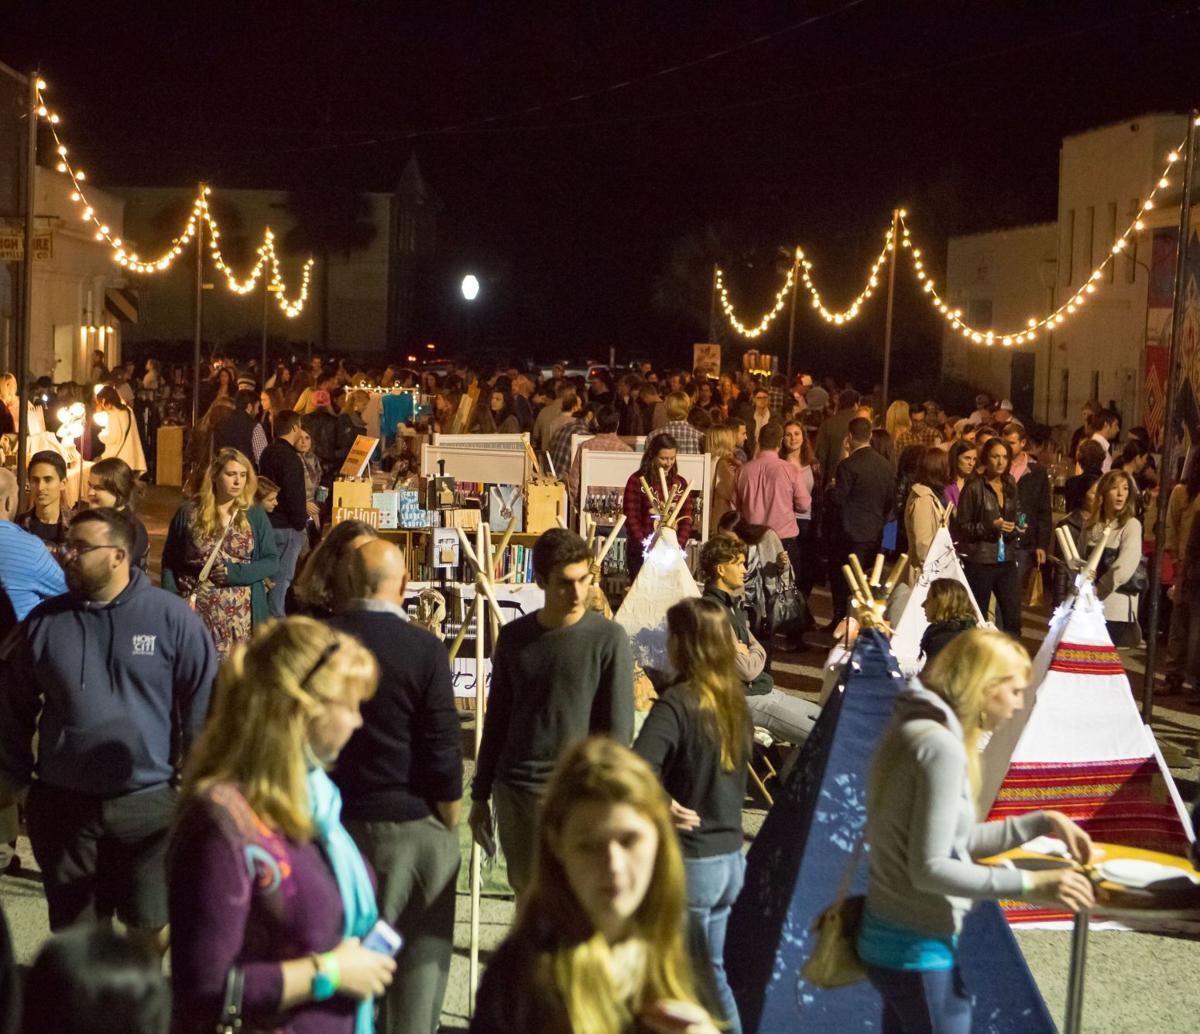 Butcher & Bee offers all things local at new night market